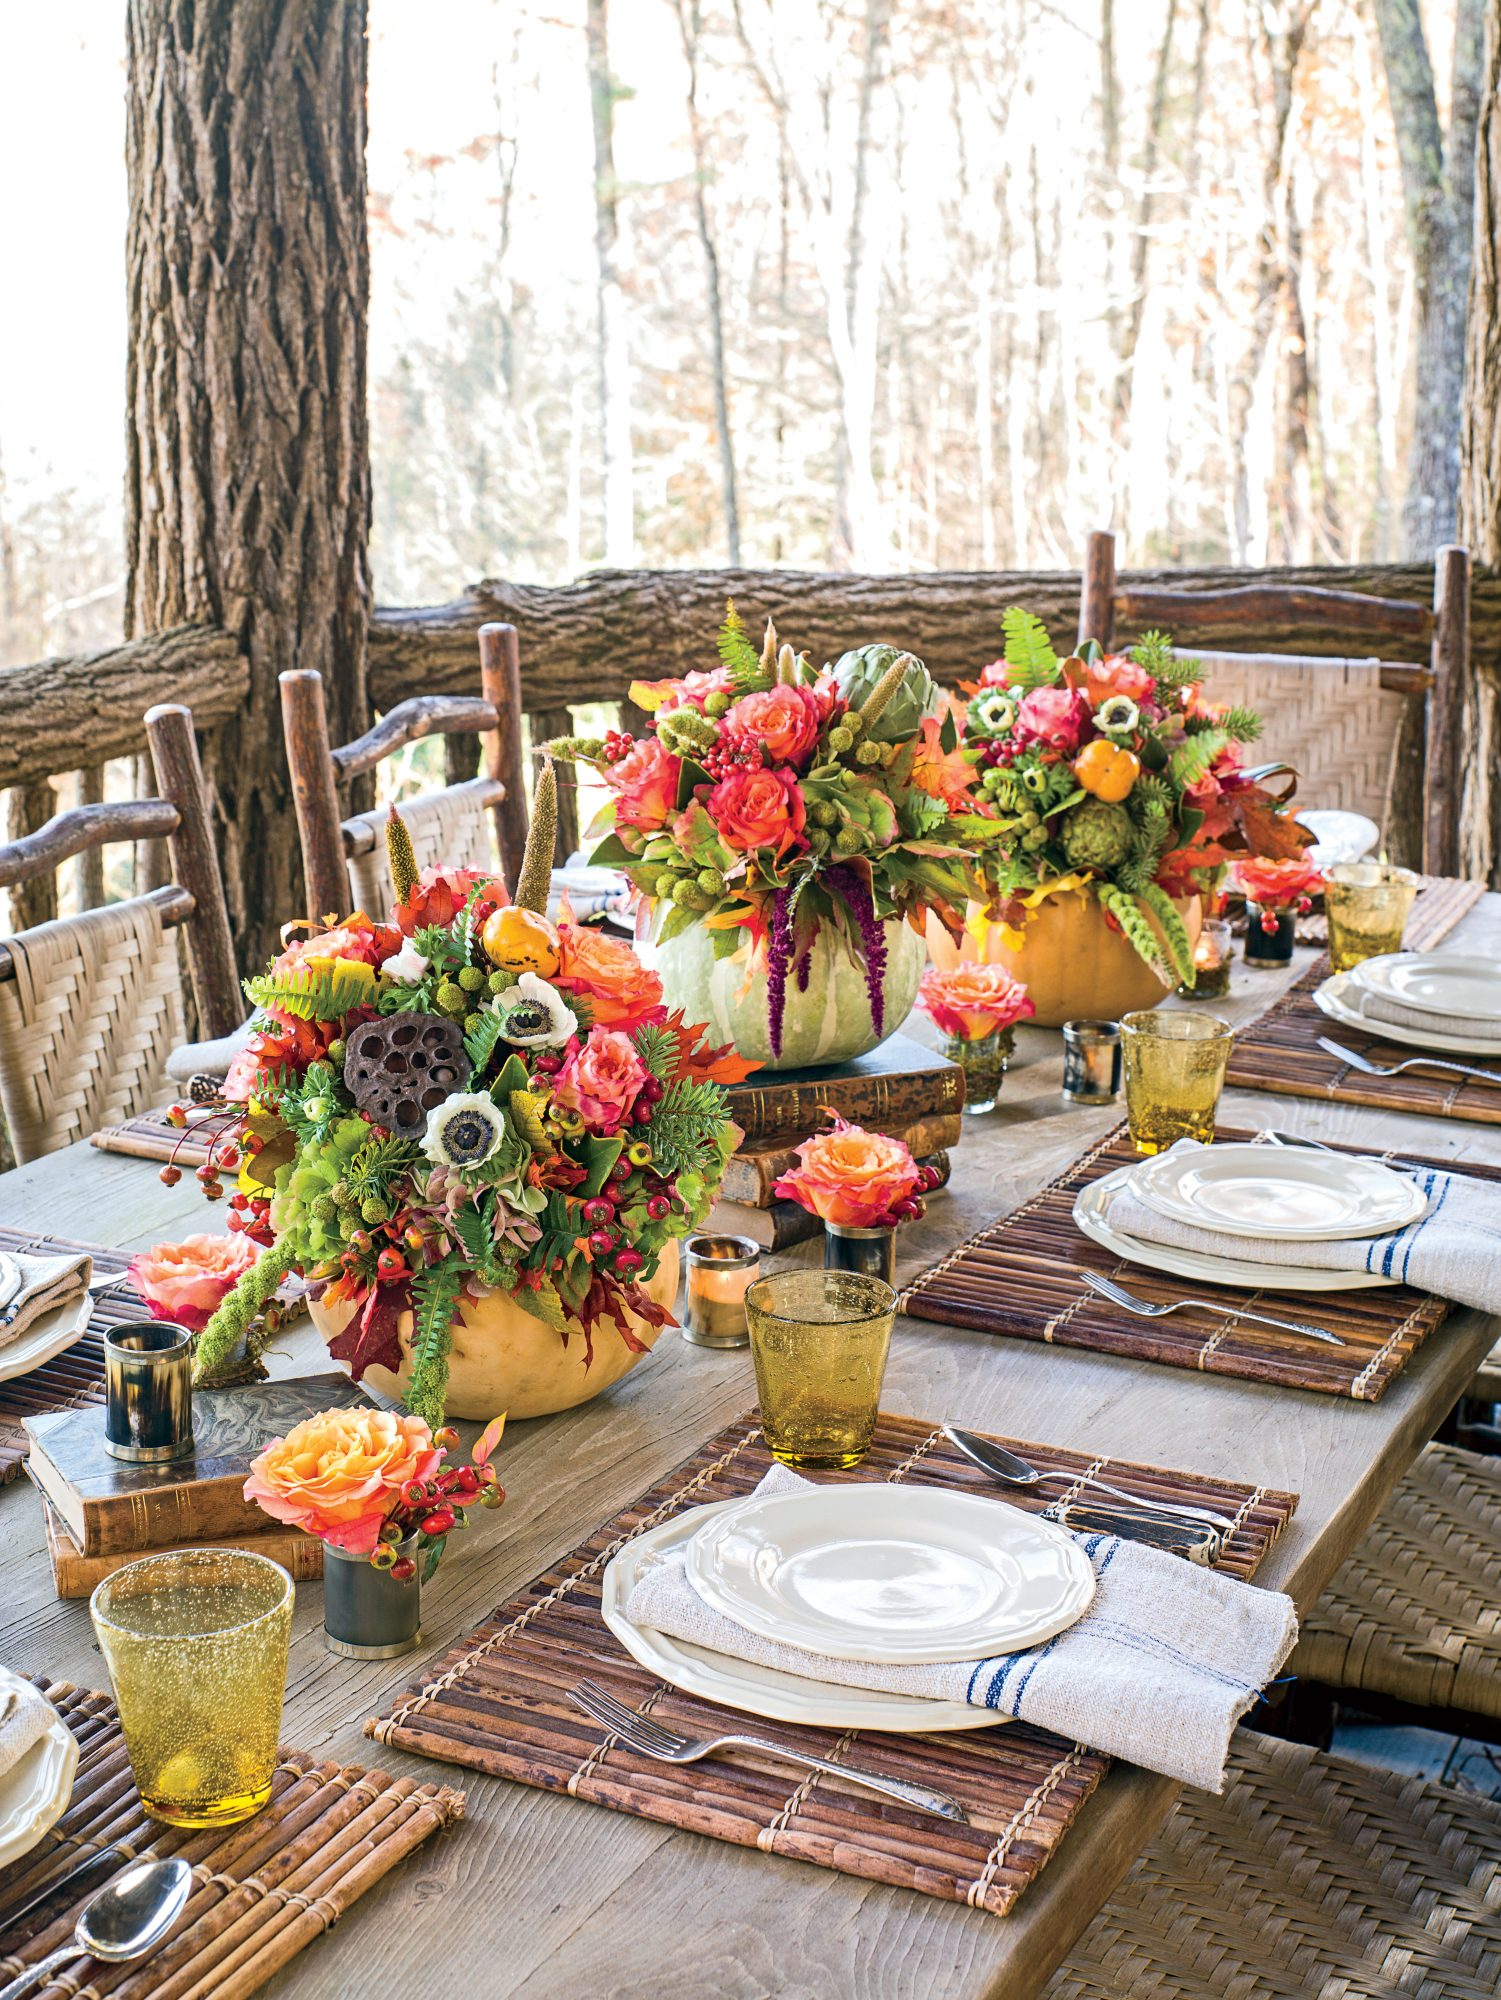 35 best images about tuscan flower arrangements on.htm 90 fall decorating ideas for a beautiful autumn season southern  90 fall decorating ideas for a